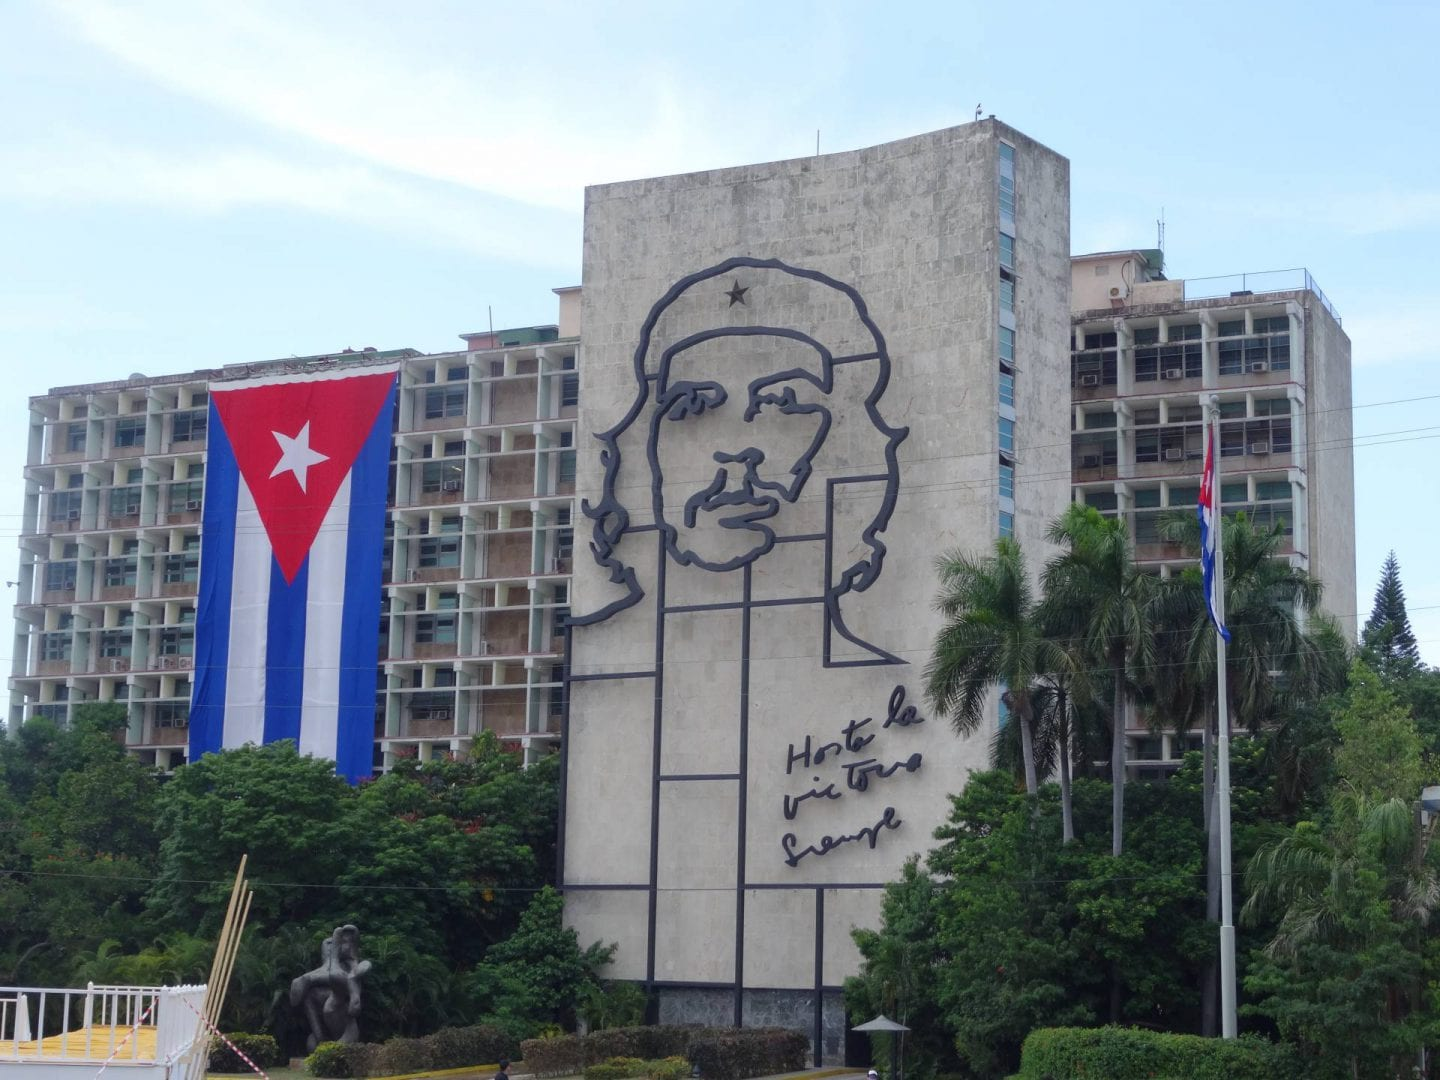 My first impressions of Cuba